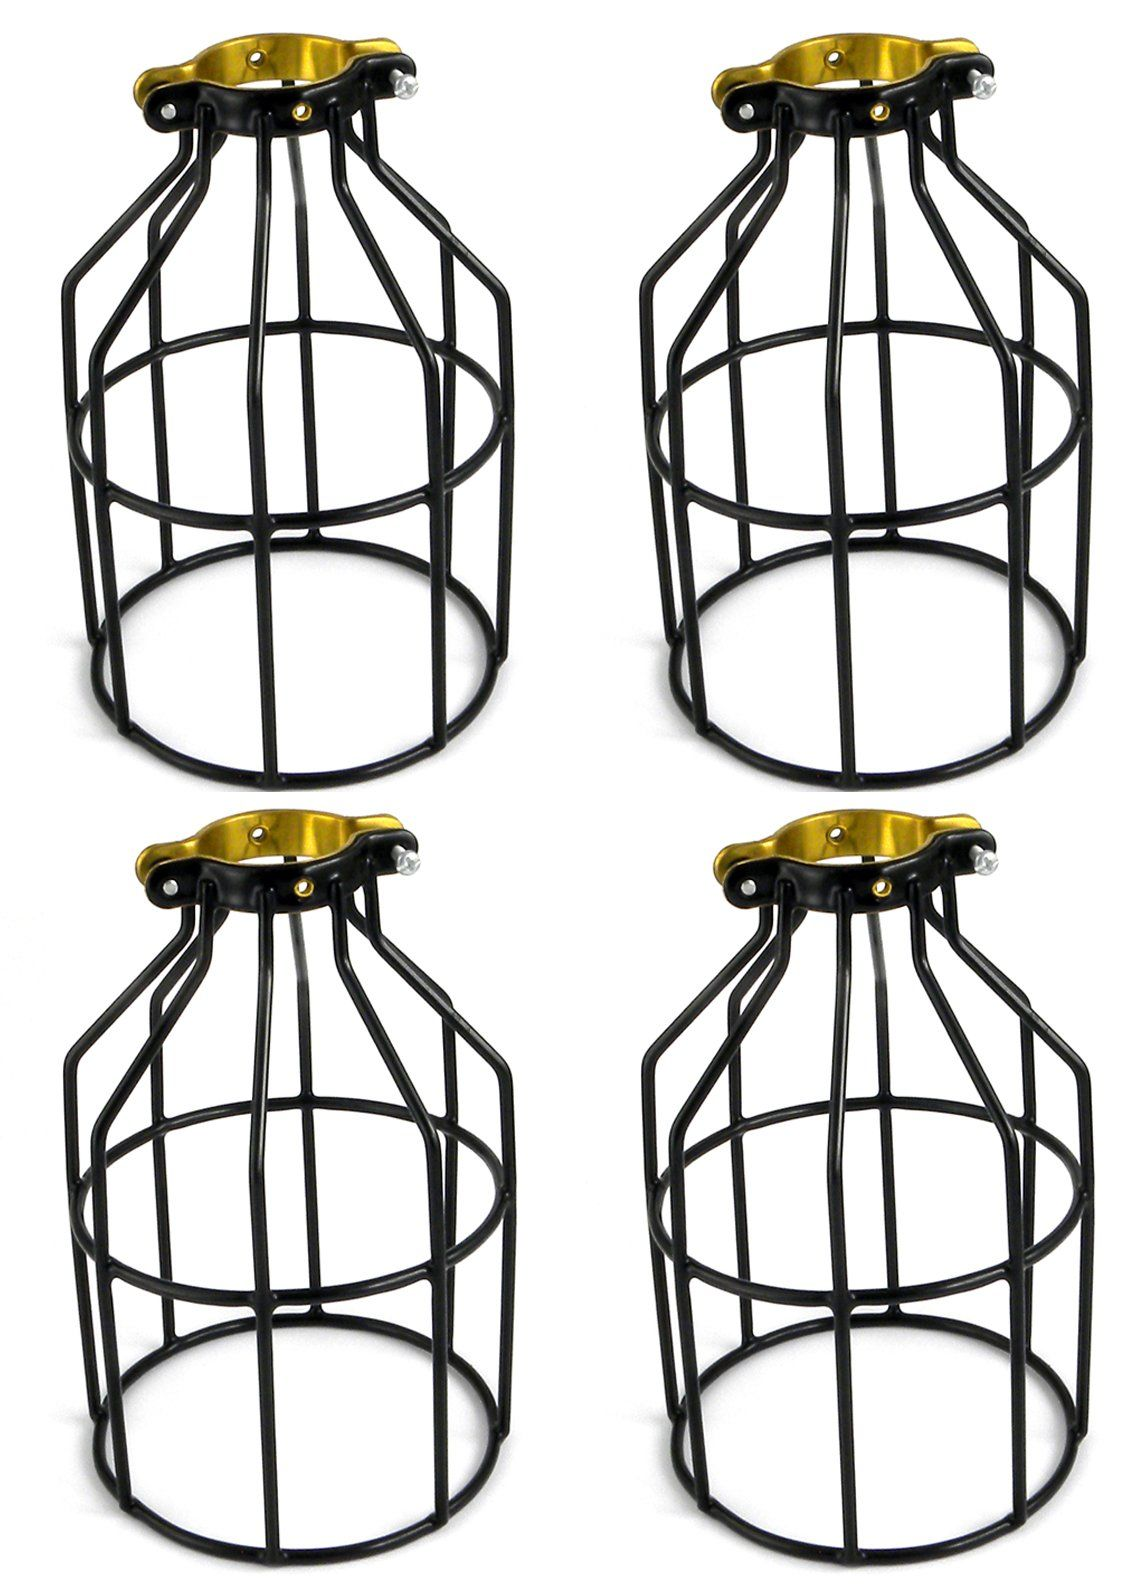 Adamax WLG1B Metal Lamp Guard for String Lights and Lamp holders - Lighting Accessories - Amazon.com